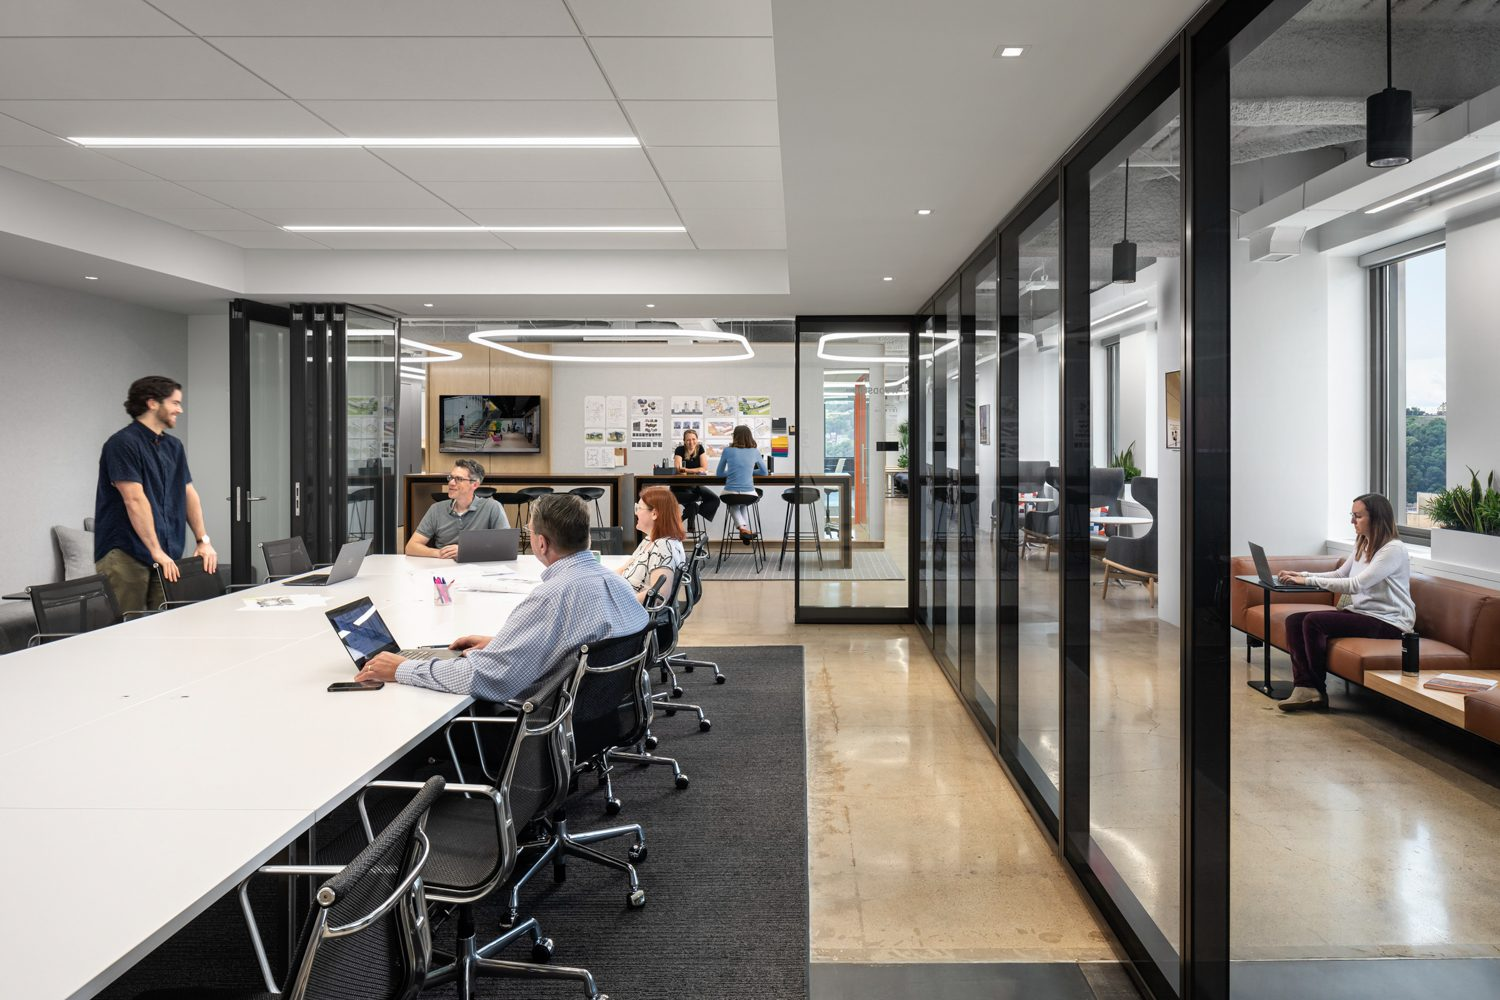 A Muraflex interior storefront defines the conference room, with Herman Miller seating and a table by Coalesse.